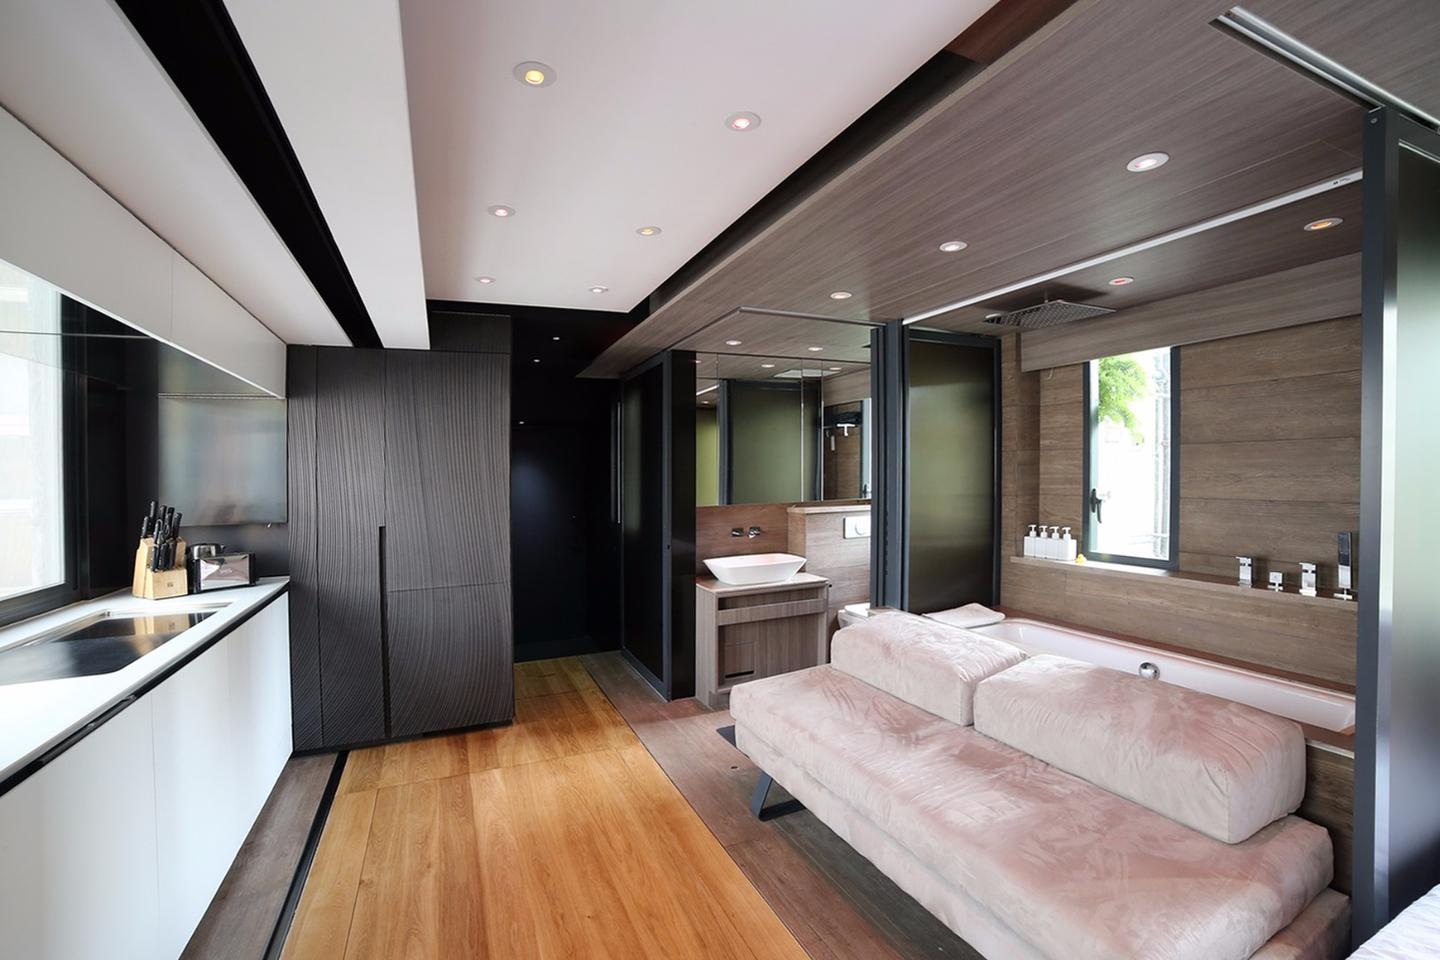 The Small Home Smart Home is located in the Central district of Hong Kong